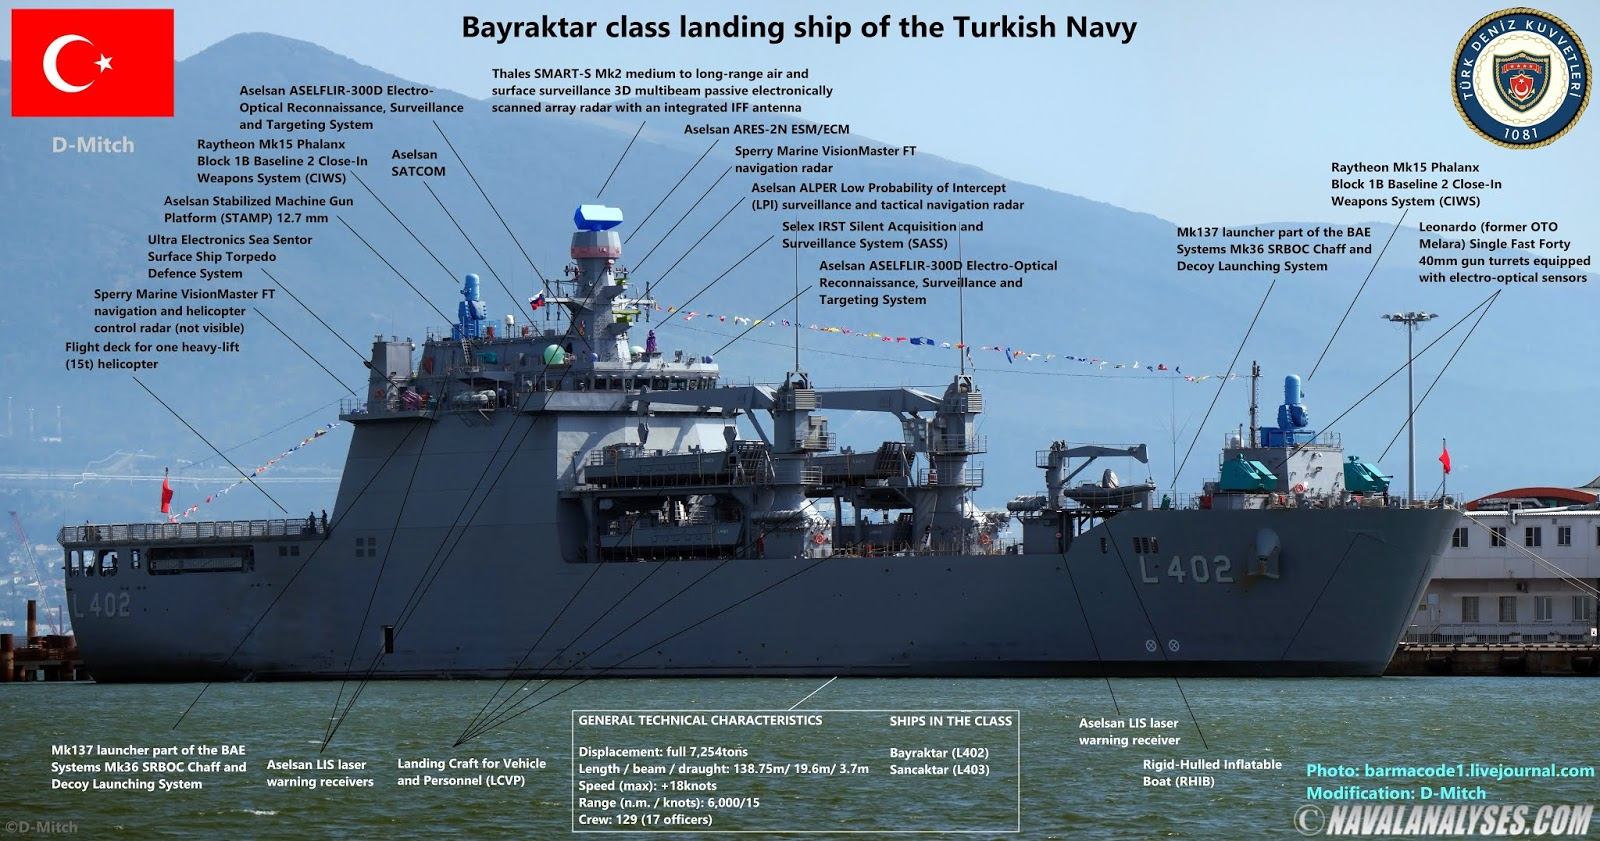 Naval Analyses: Bayraktar class landing ships of the Turkish